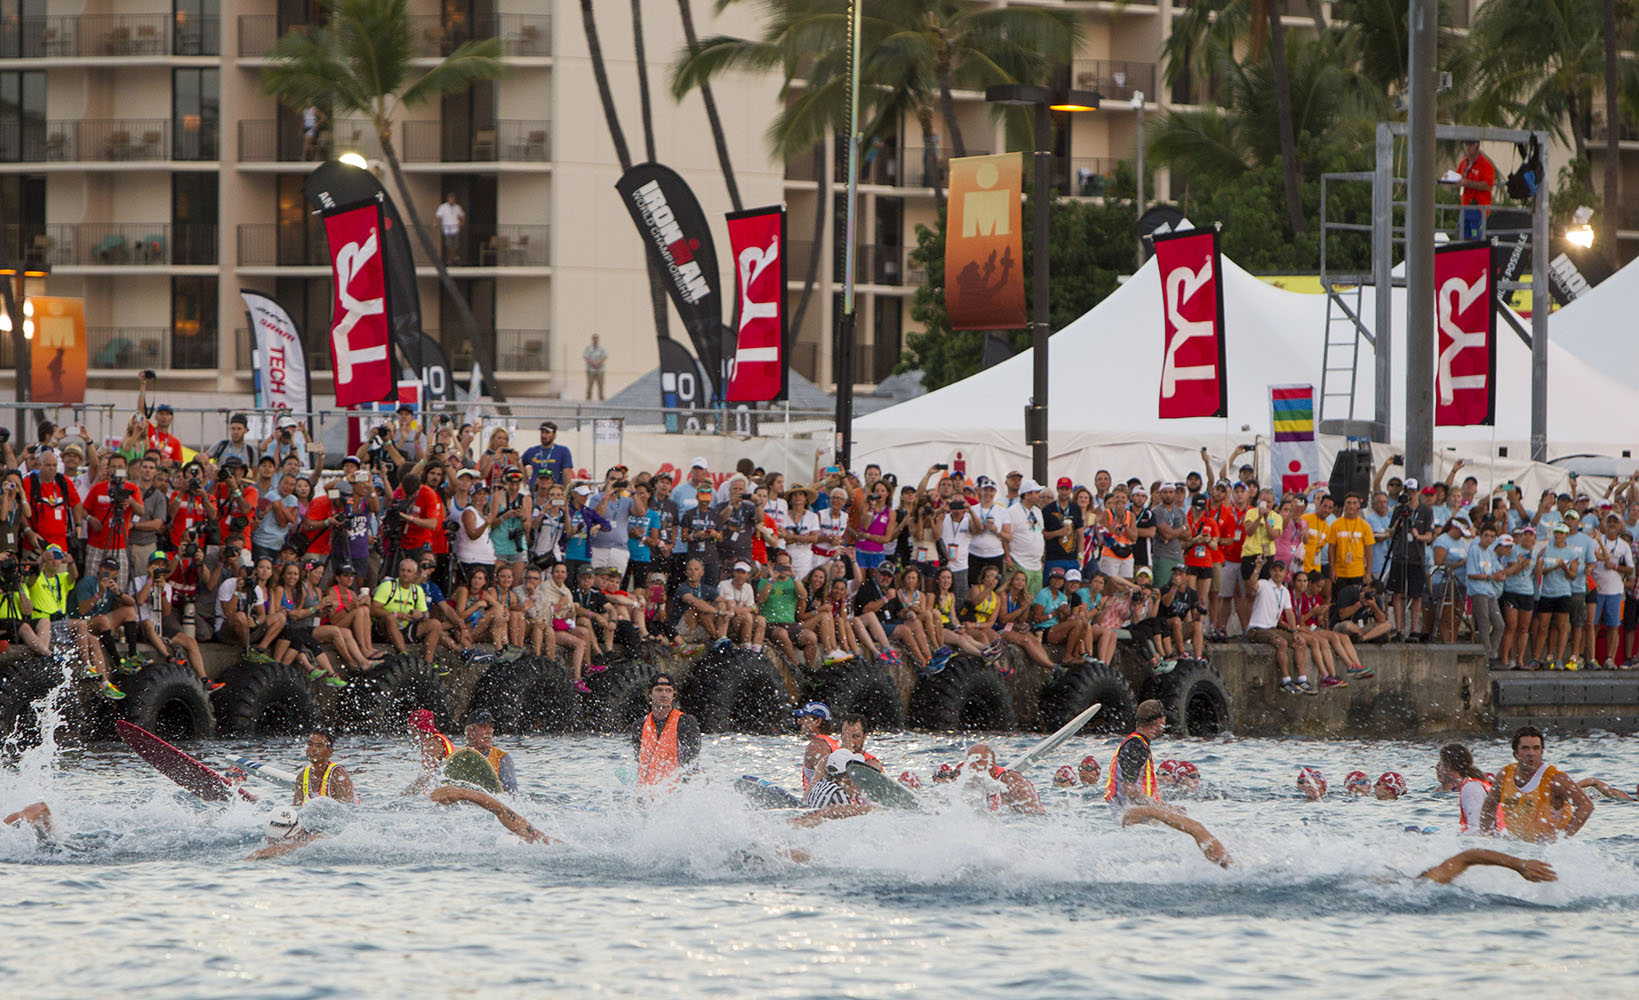 Swimmers are seen at the start of the 2014 IRONMAN World Championship.